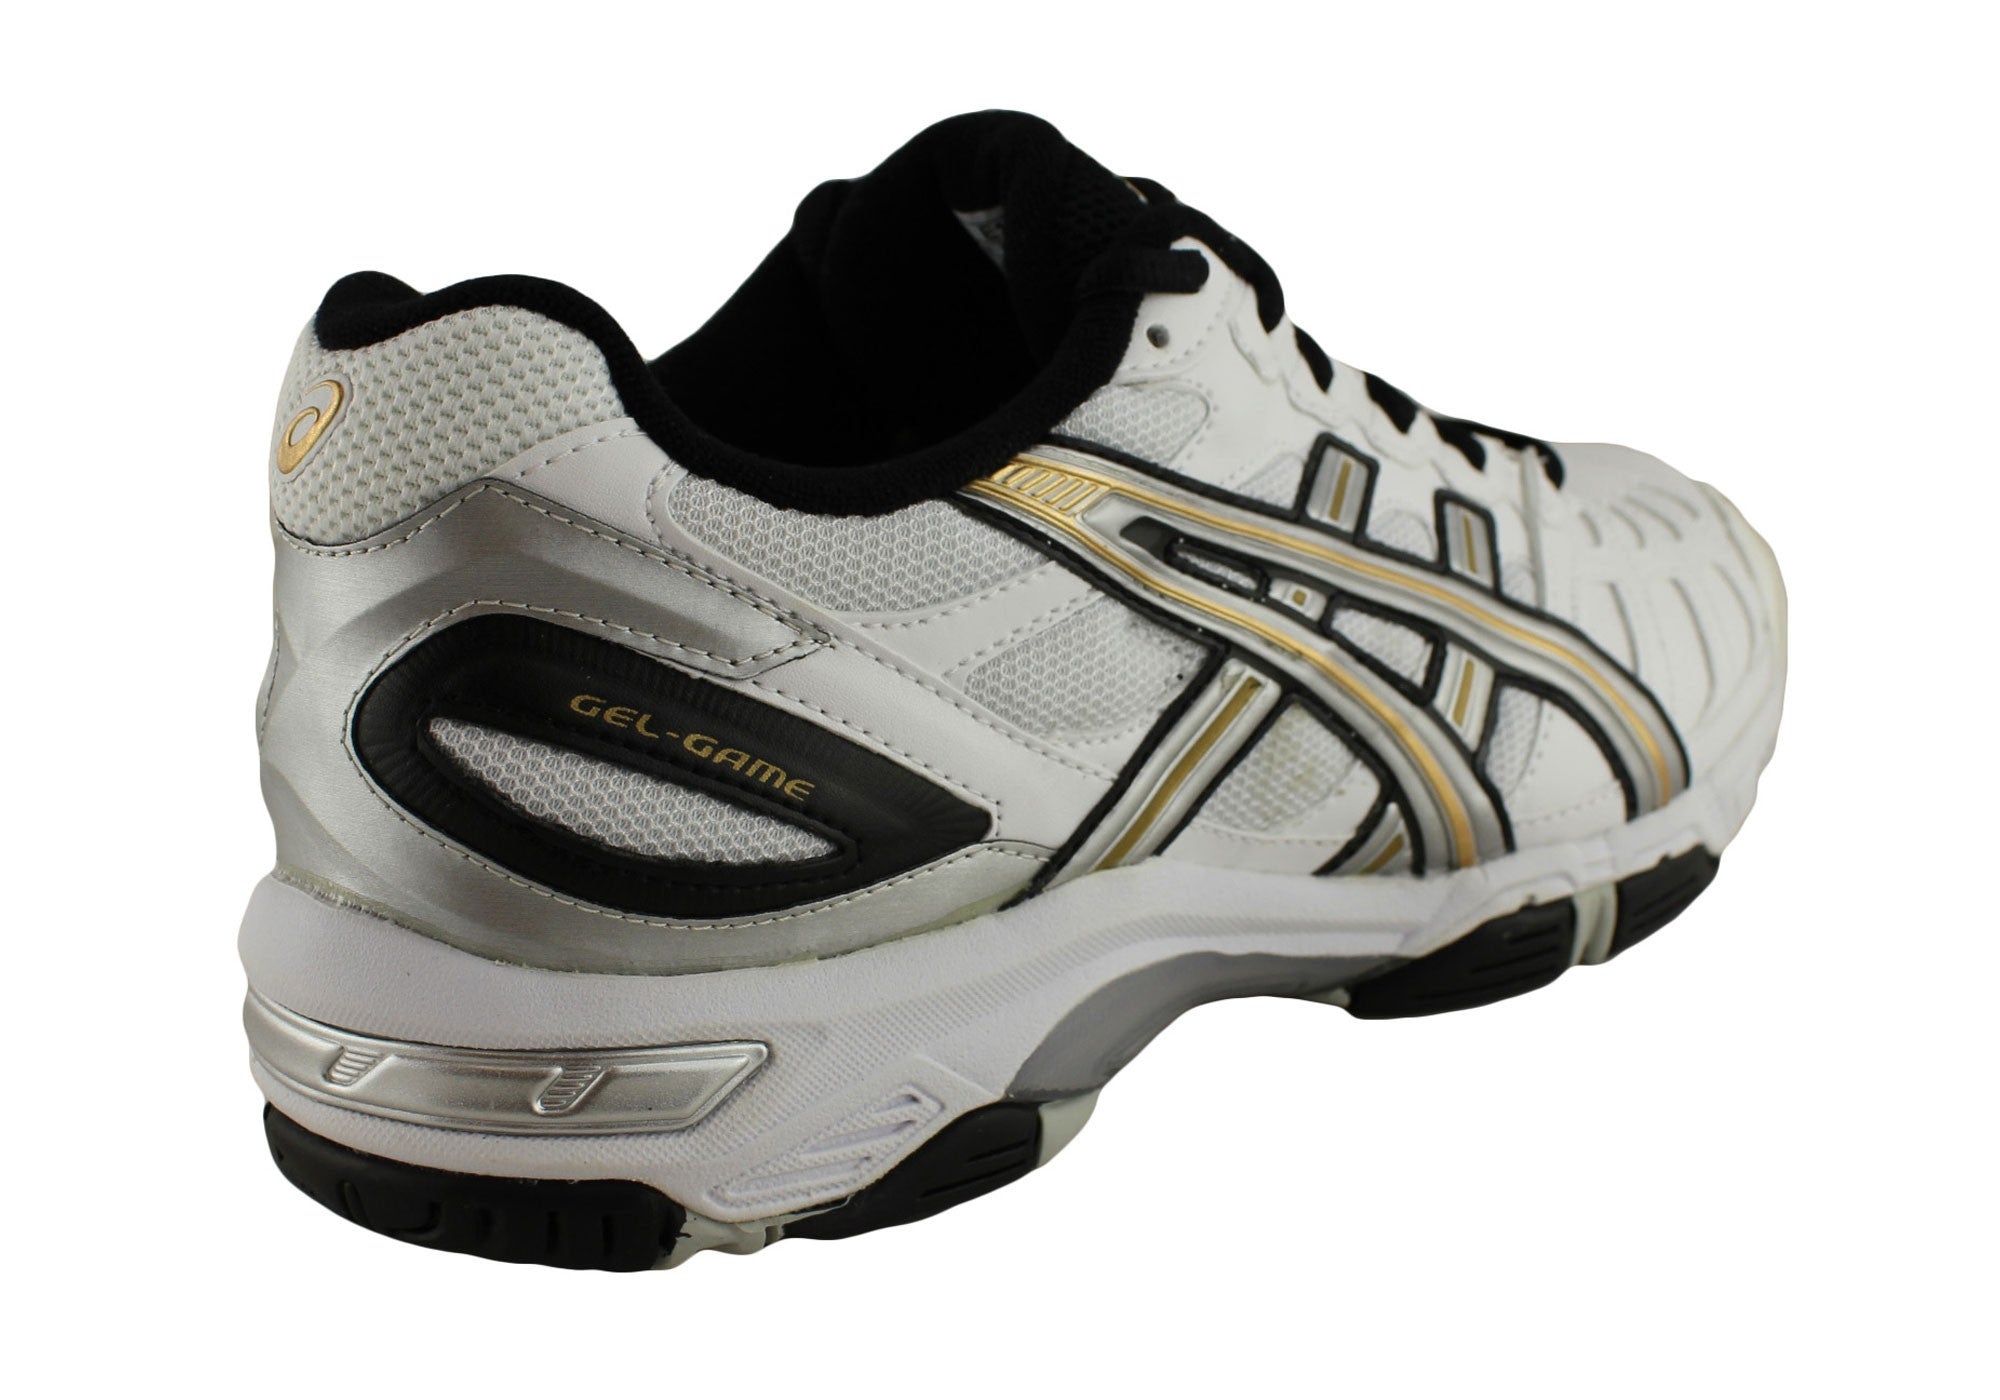 ASICS GEL GAME 3 OLDER KIDS/BOYS CROSS TRAINERS